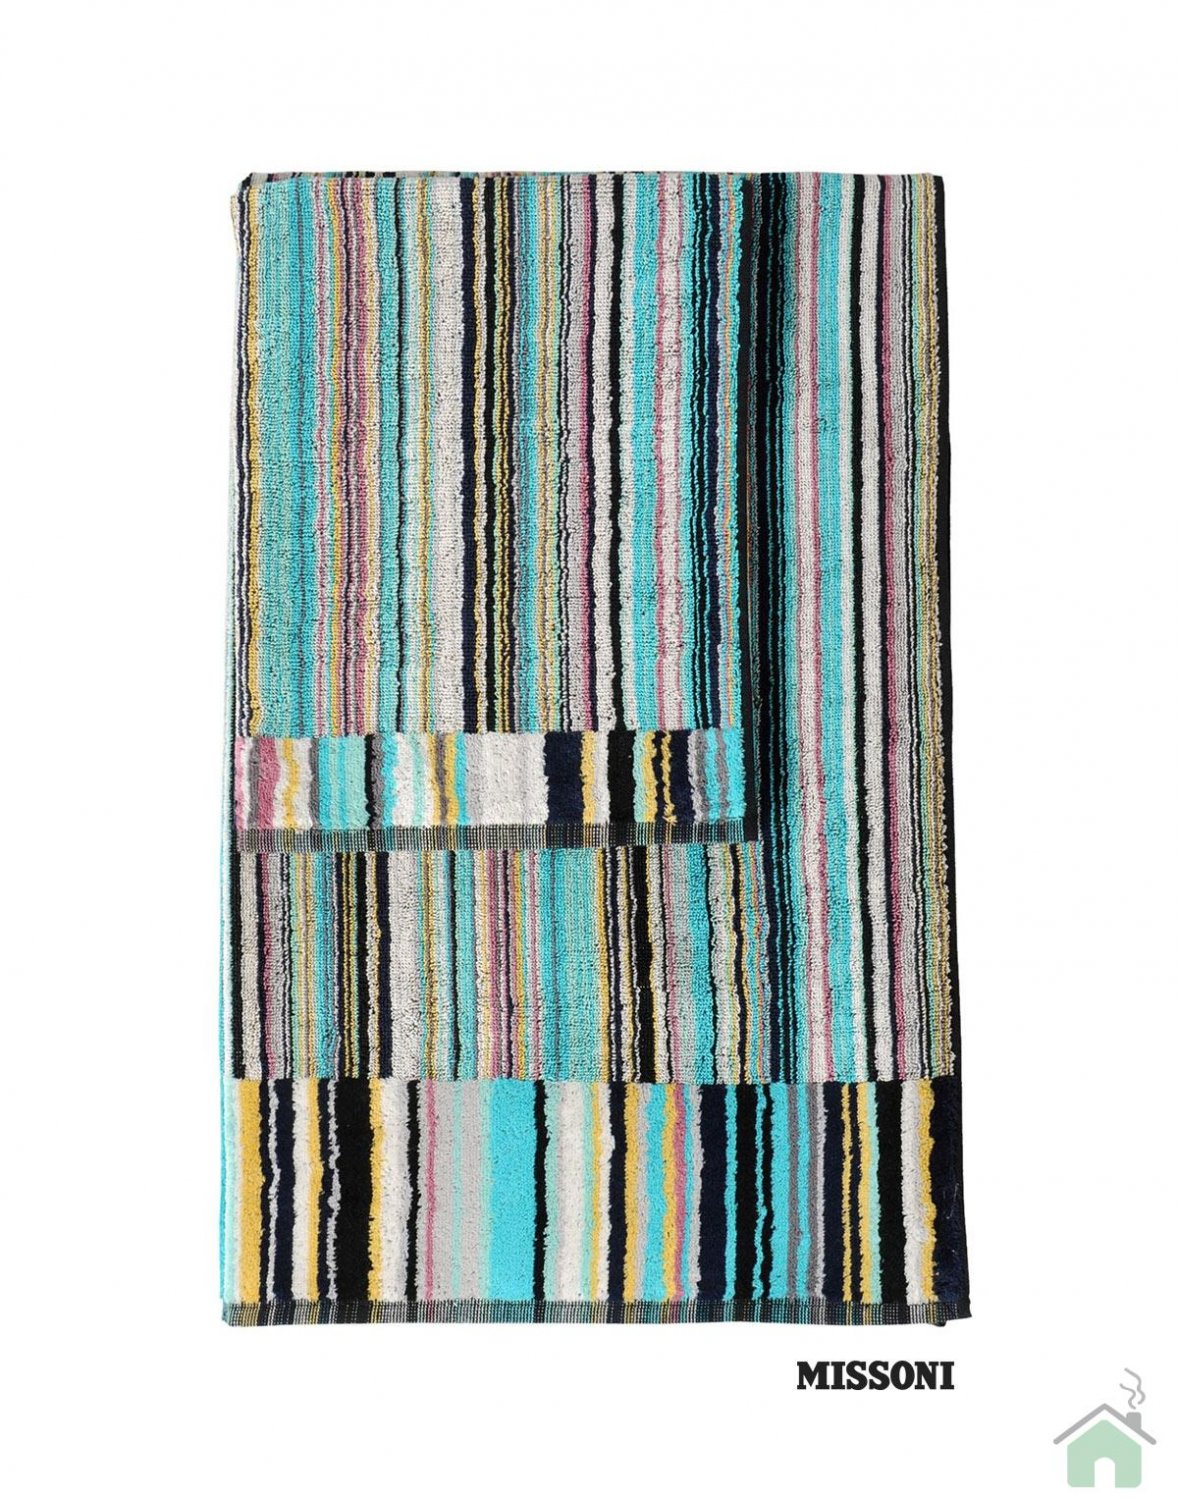 Missoni Jazz 170 bathmat - 2014 Collection